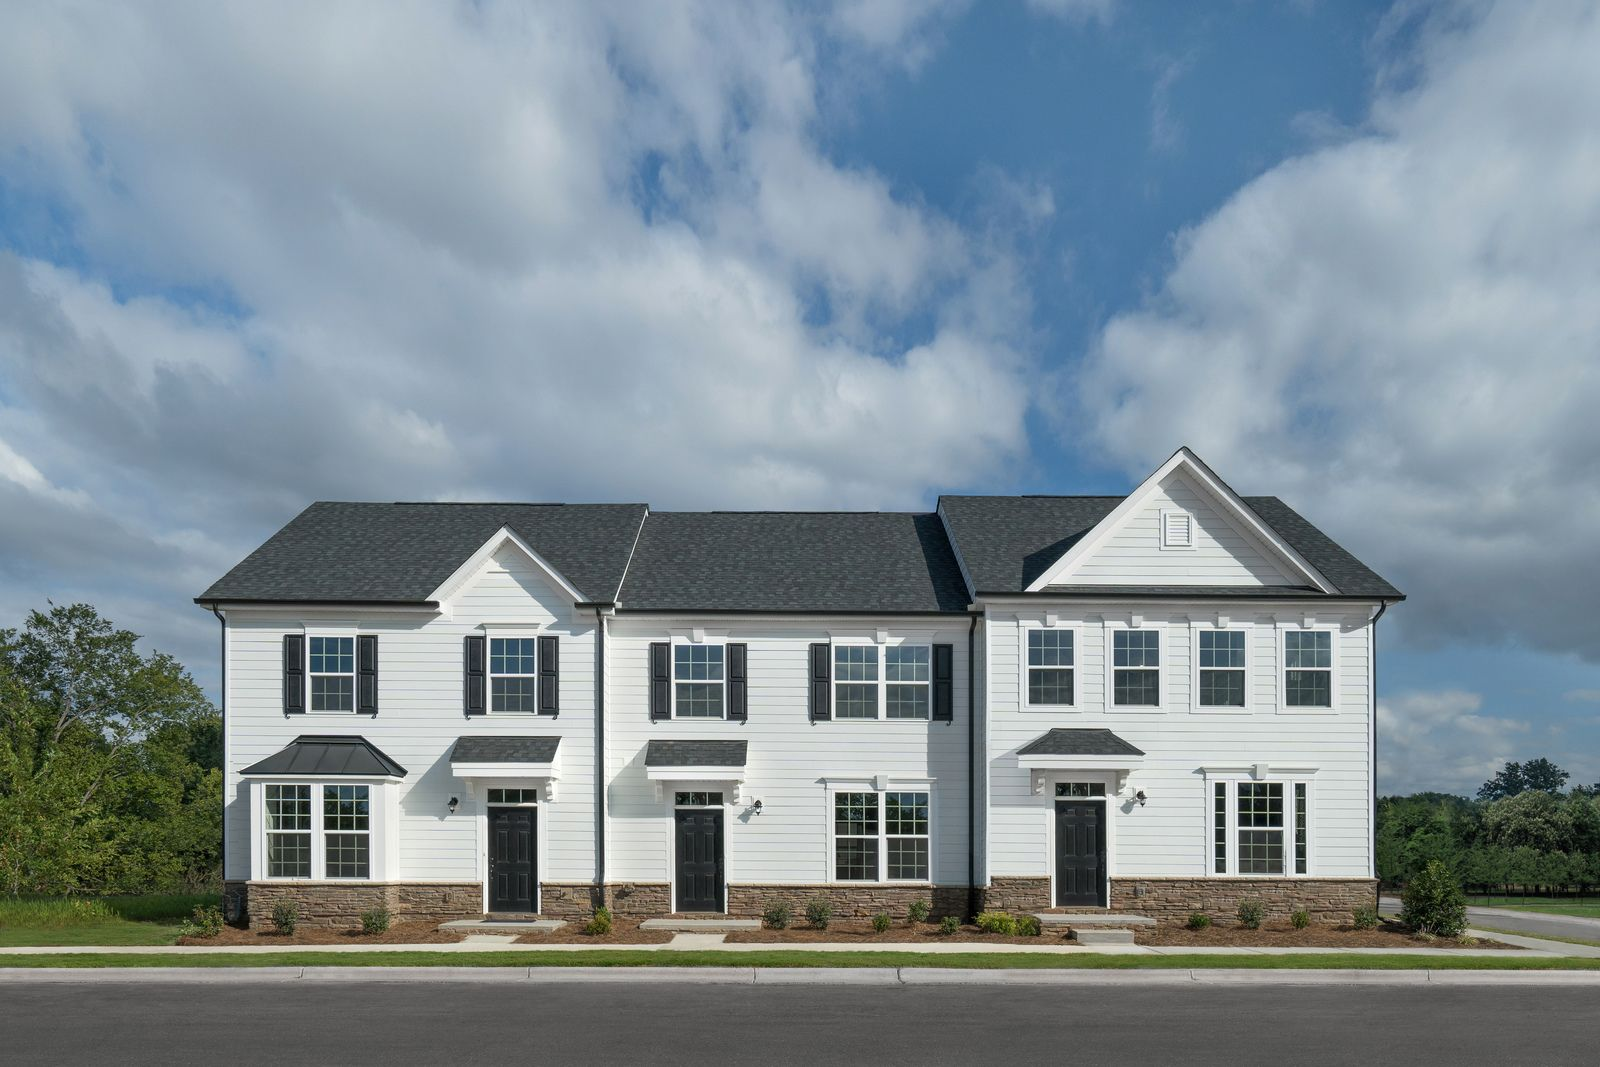 Why rent? Own a new 3 bedroom townhome with a fenced-in yard and 2 car garage:Last chance!Schedule a visitto see these townhomes in person andlearn more about your financing options that include 0% down!